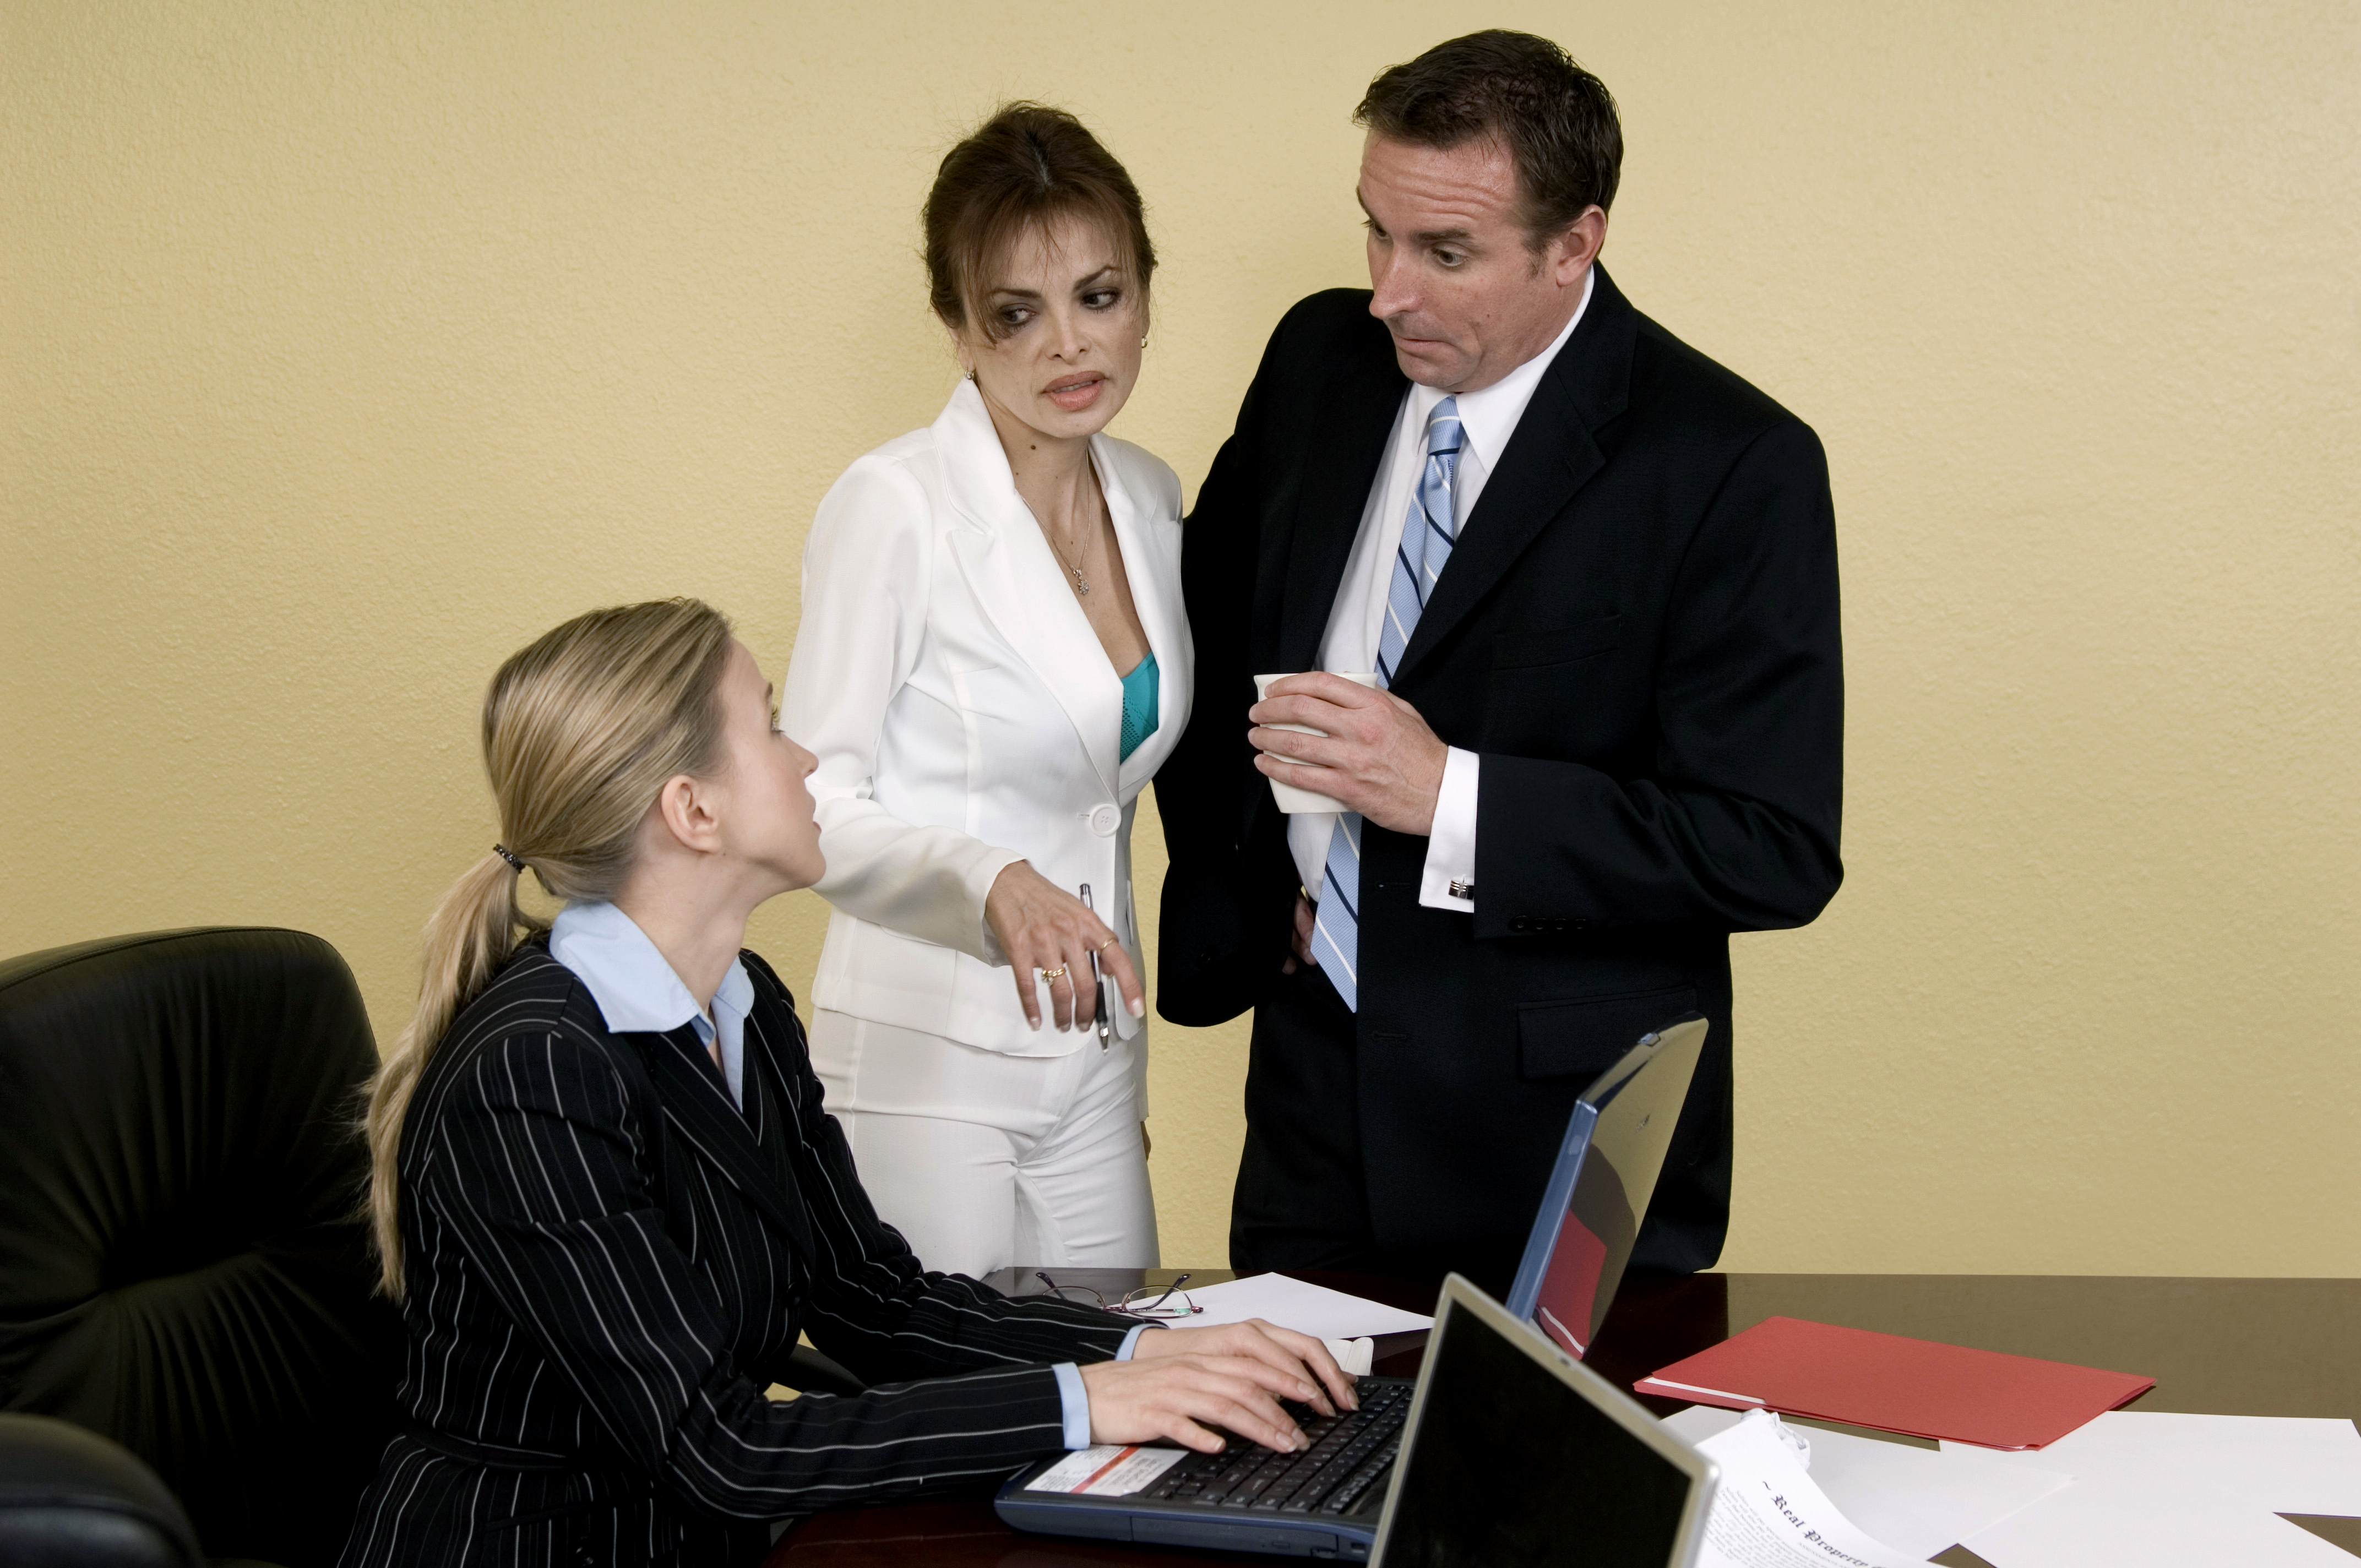 office interview analytical interviewing humintell office interview analytical interviewing humintell